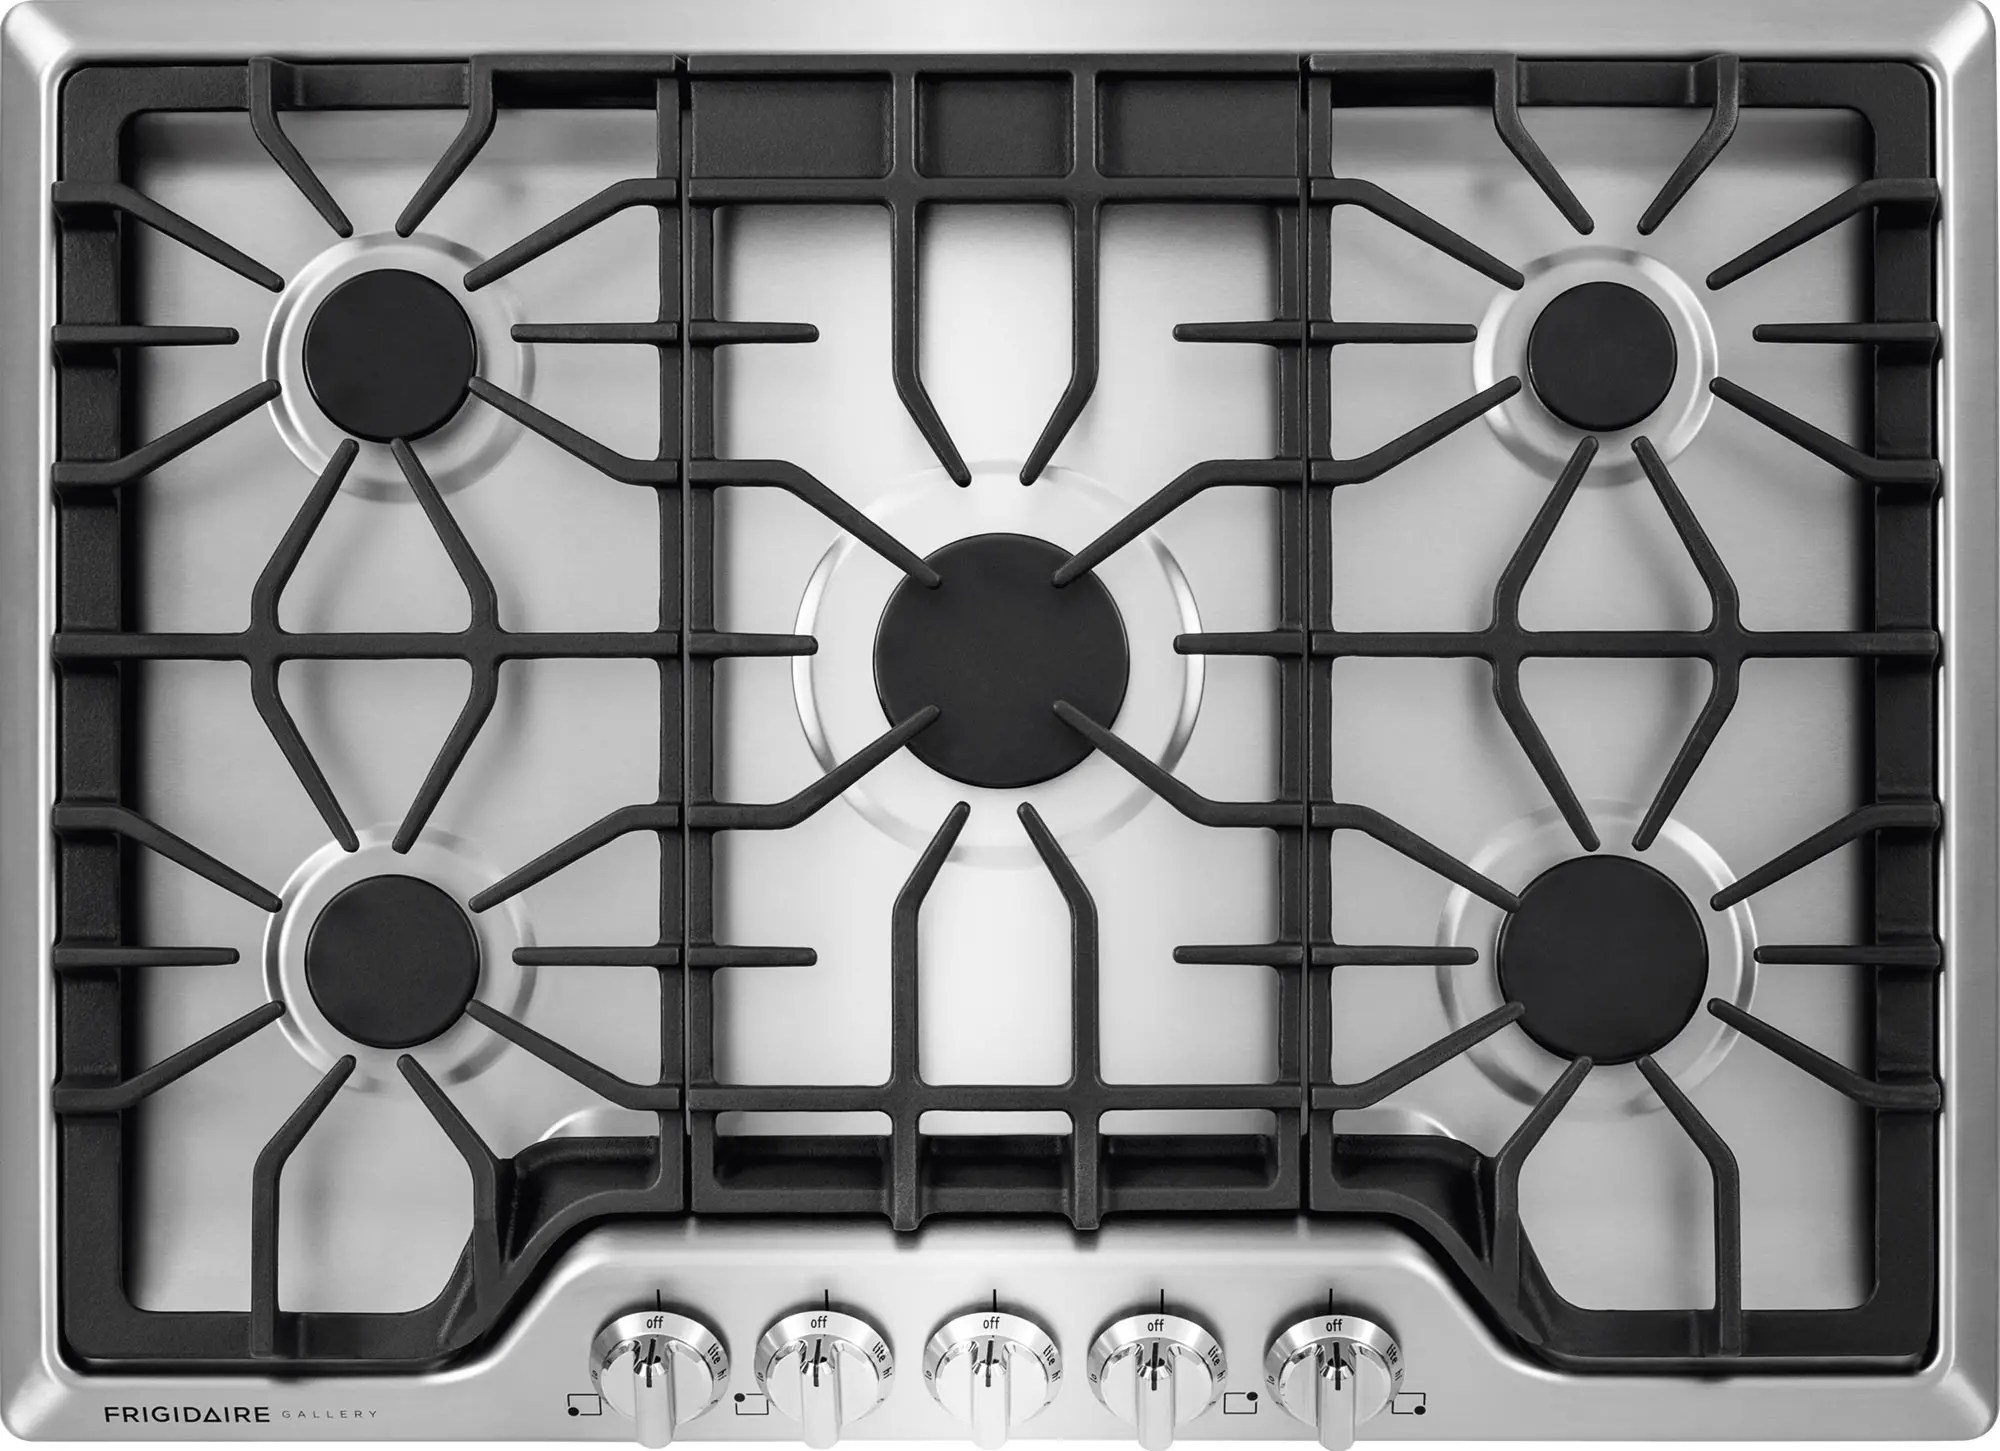 Gas Cooktop Installation Cost Frigidaire Fggc3047qs 30 Inch Gas Cooktop With Lp